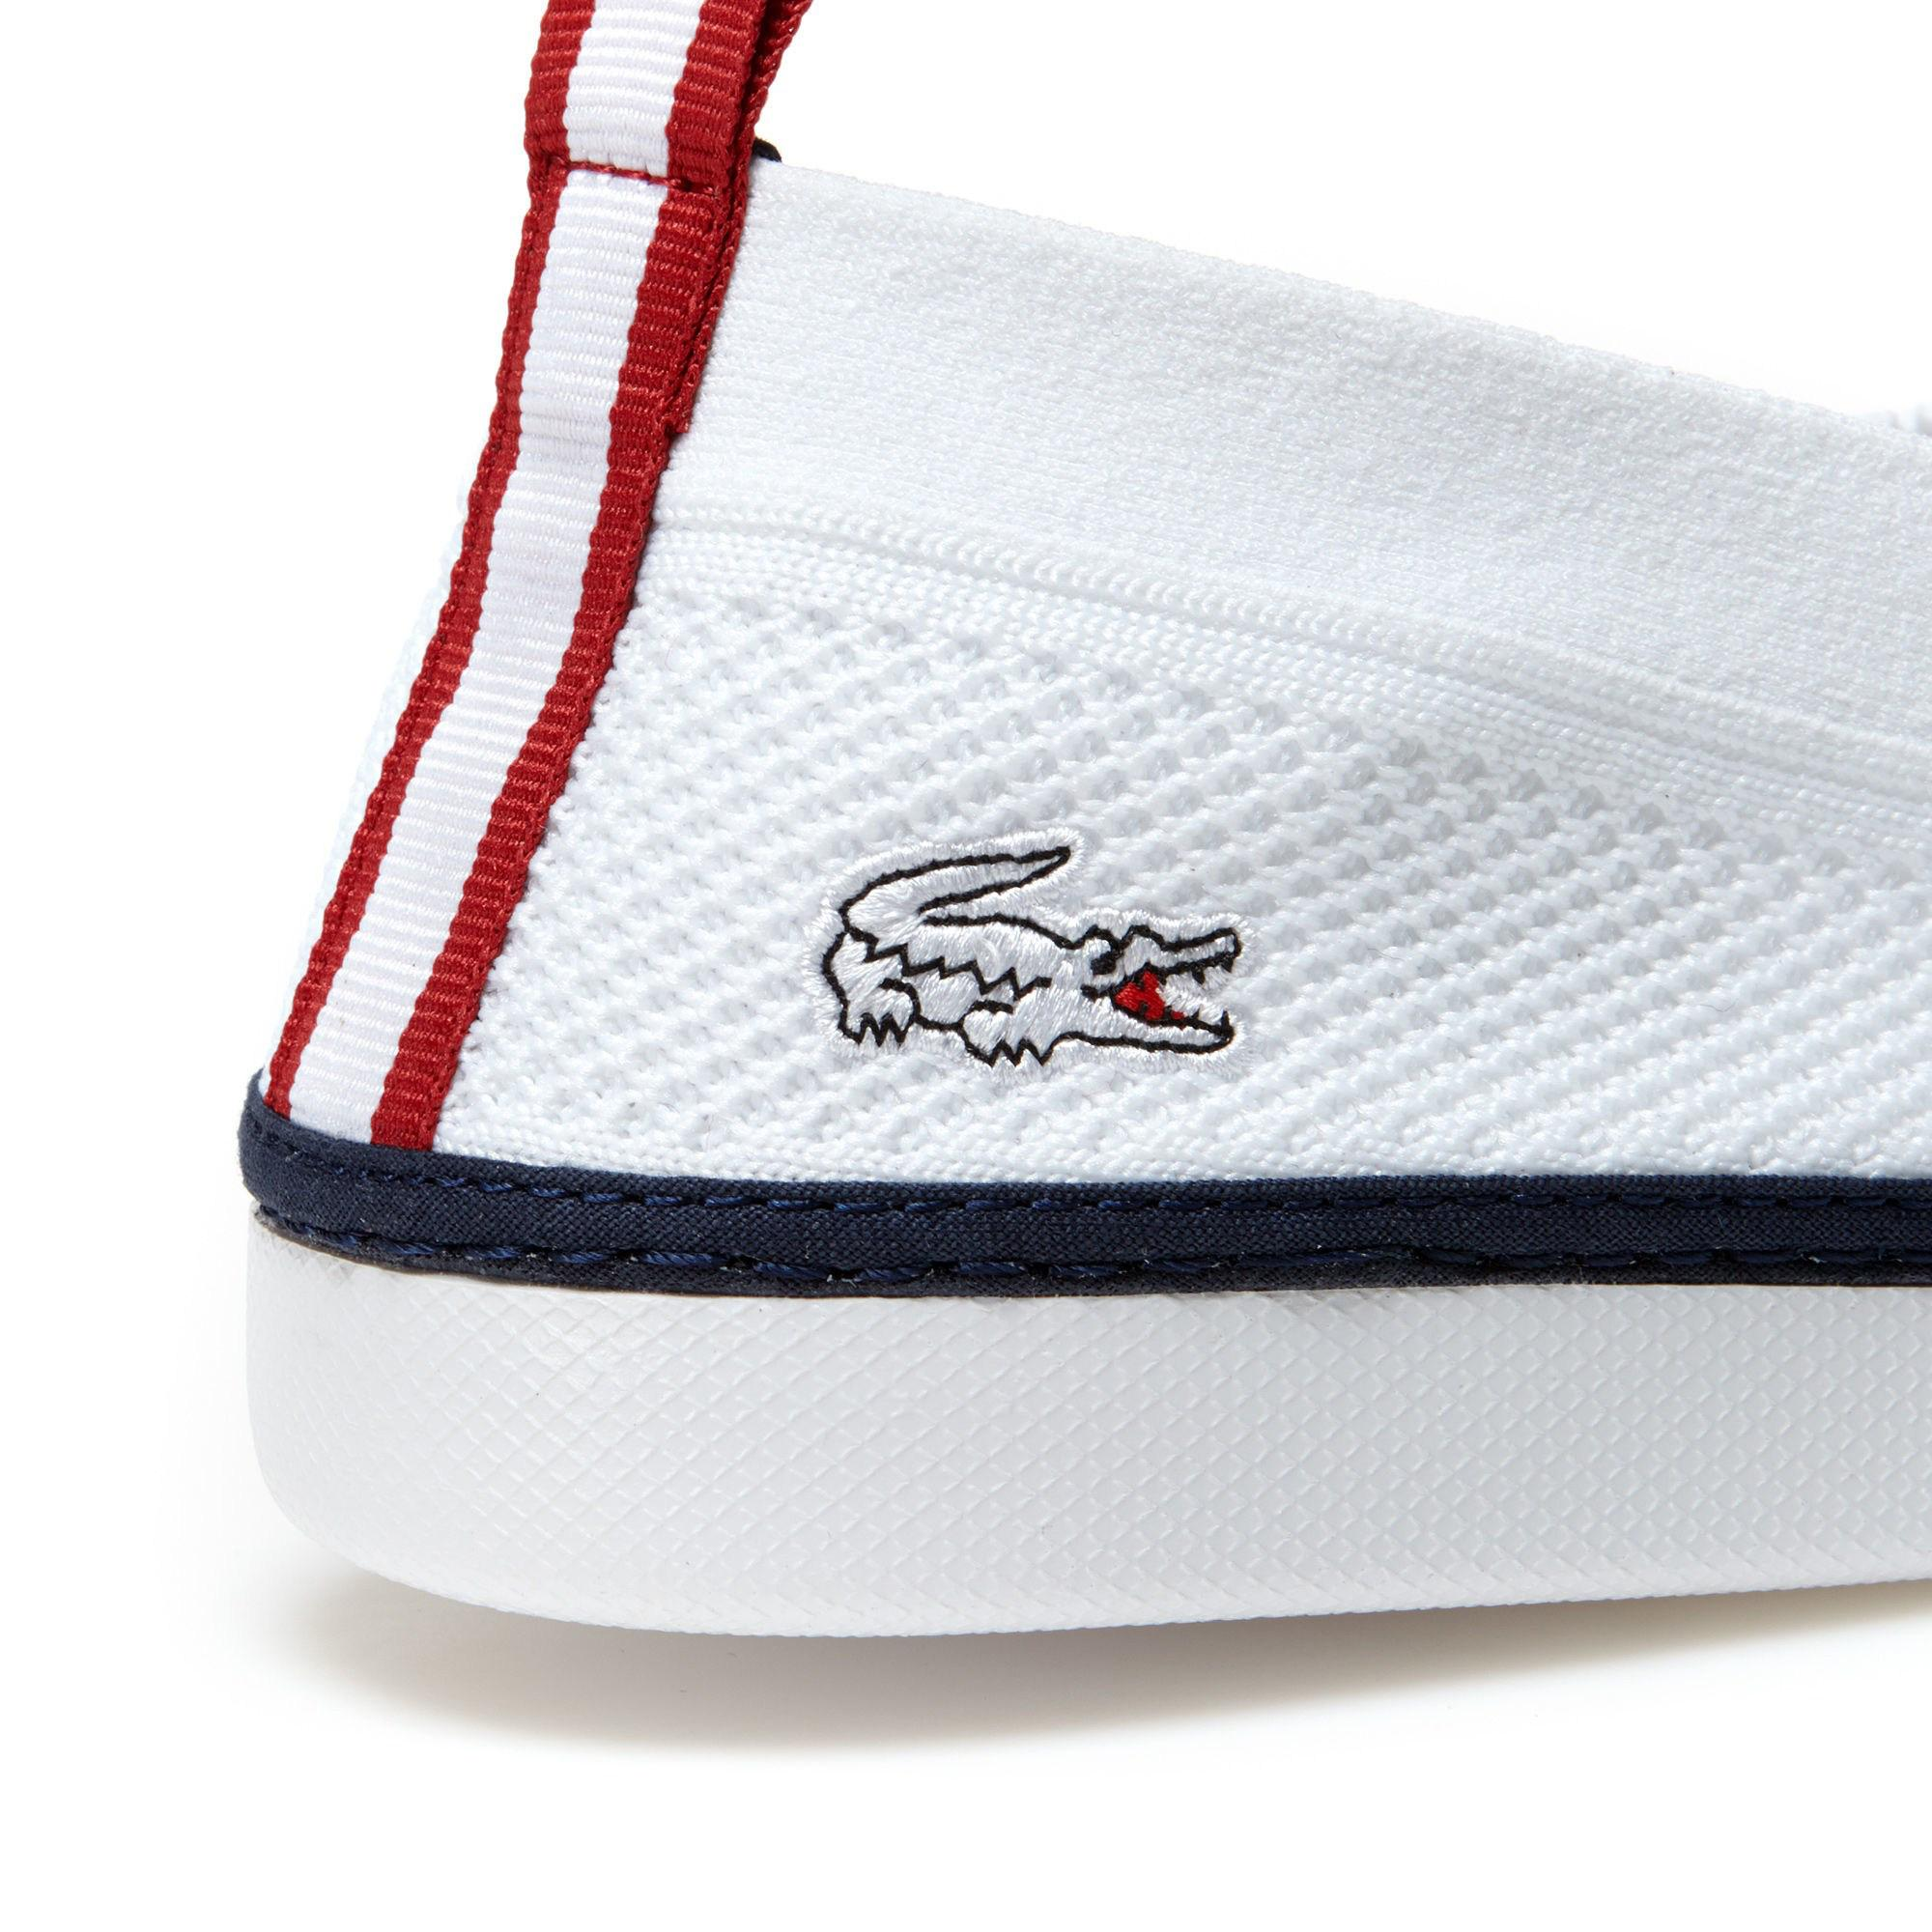 Lacoste L.Yydro 117 1 Men's Sneakers